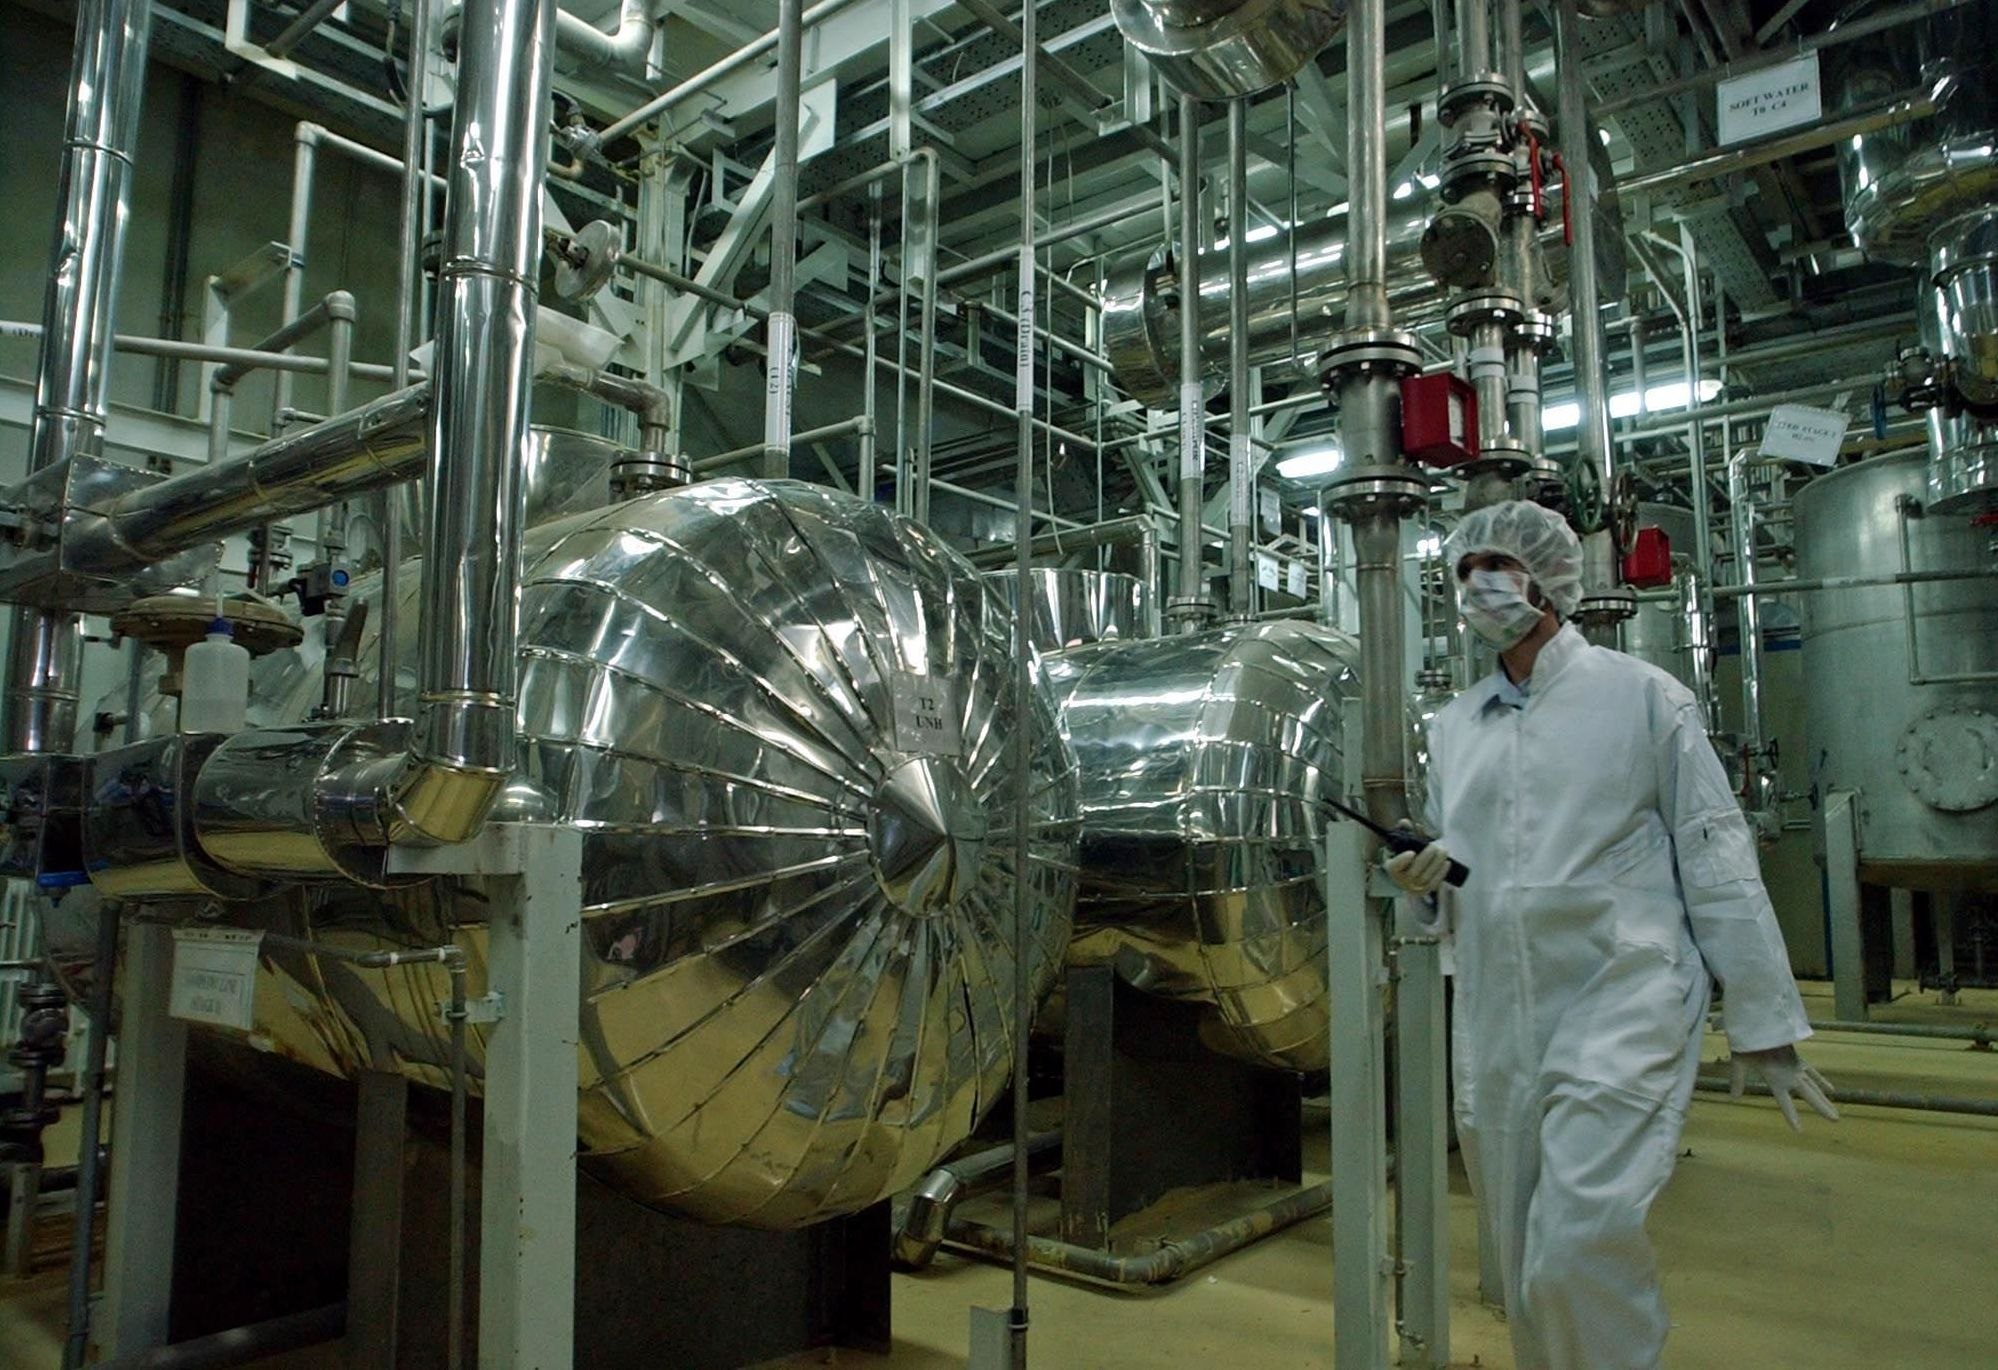 An Iranian security official, dressed in protective clothing, walks inside the Uranium Conversion Facility, just outside the city of Isfahan, 410 kilometers, (255 miles), south of the Iranian capital Tehran in this Wednesday, March 30, 2005